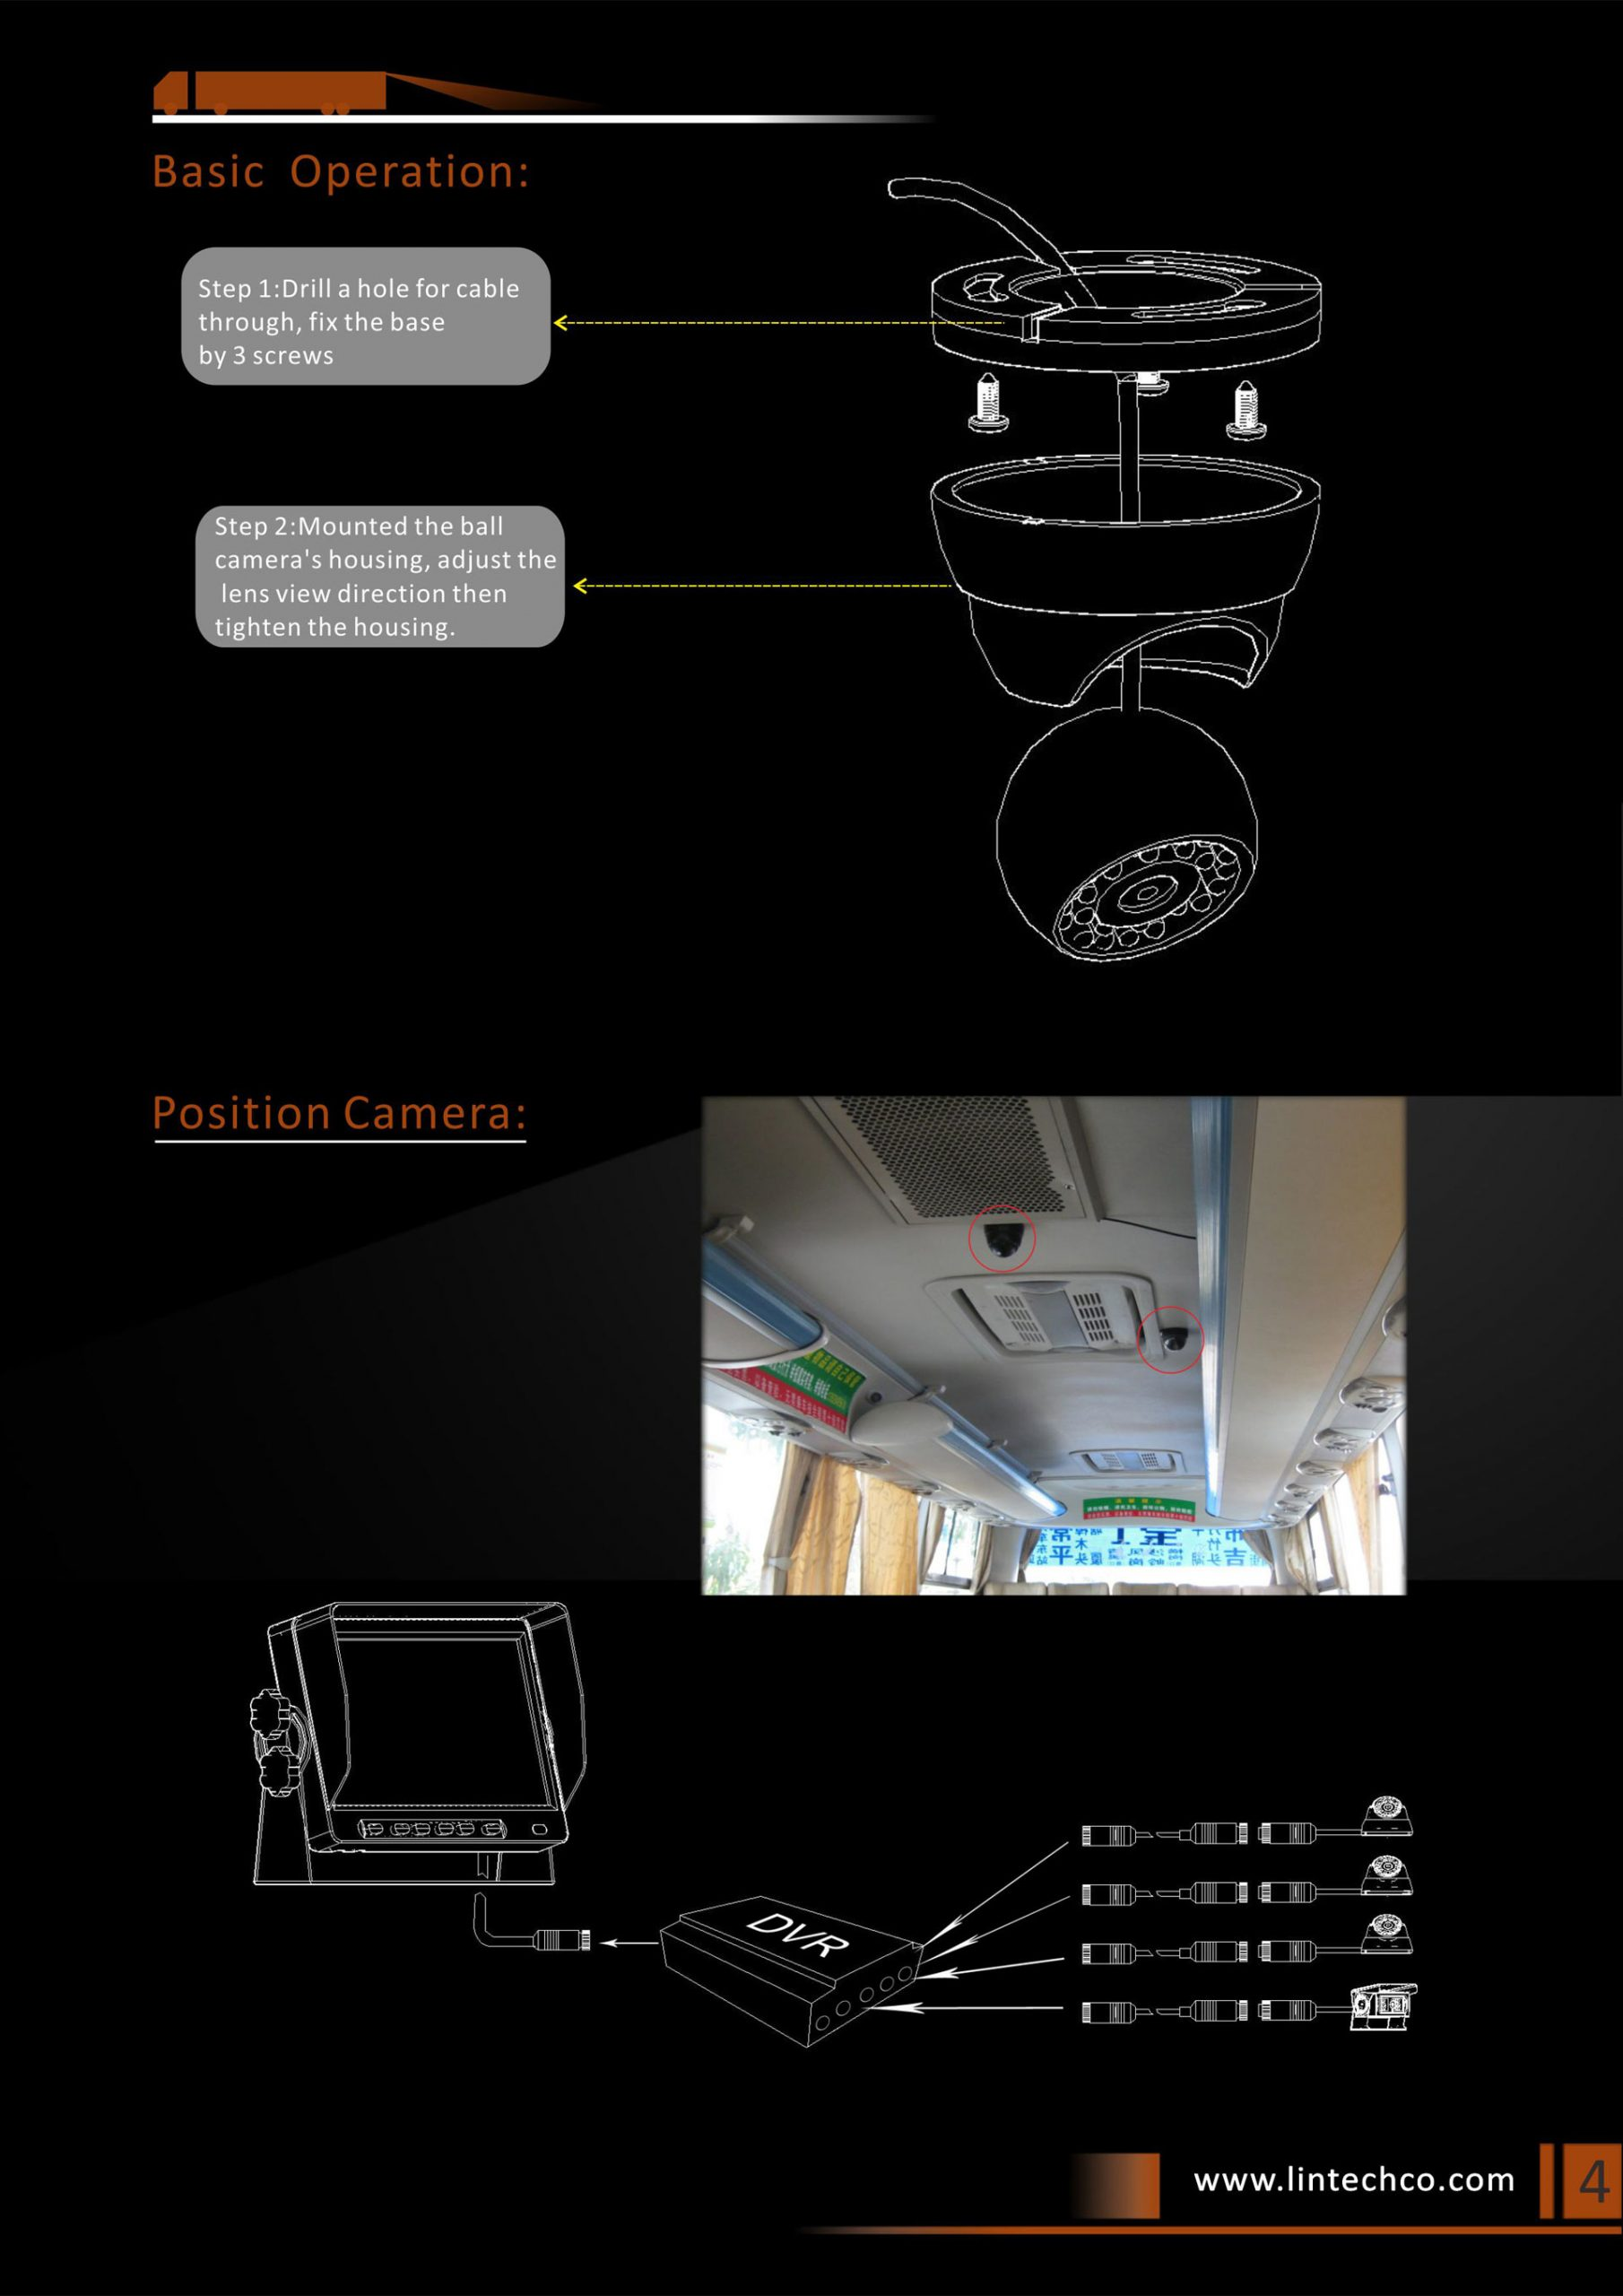 4. Inside Bus Truck Dome CCTV Camera For Video Recording Monitoring Application